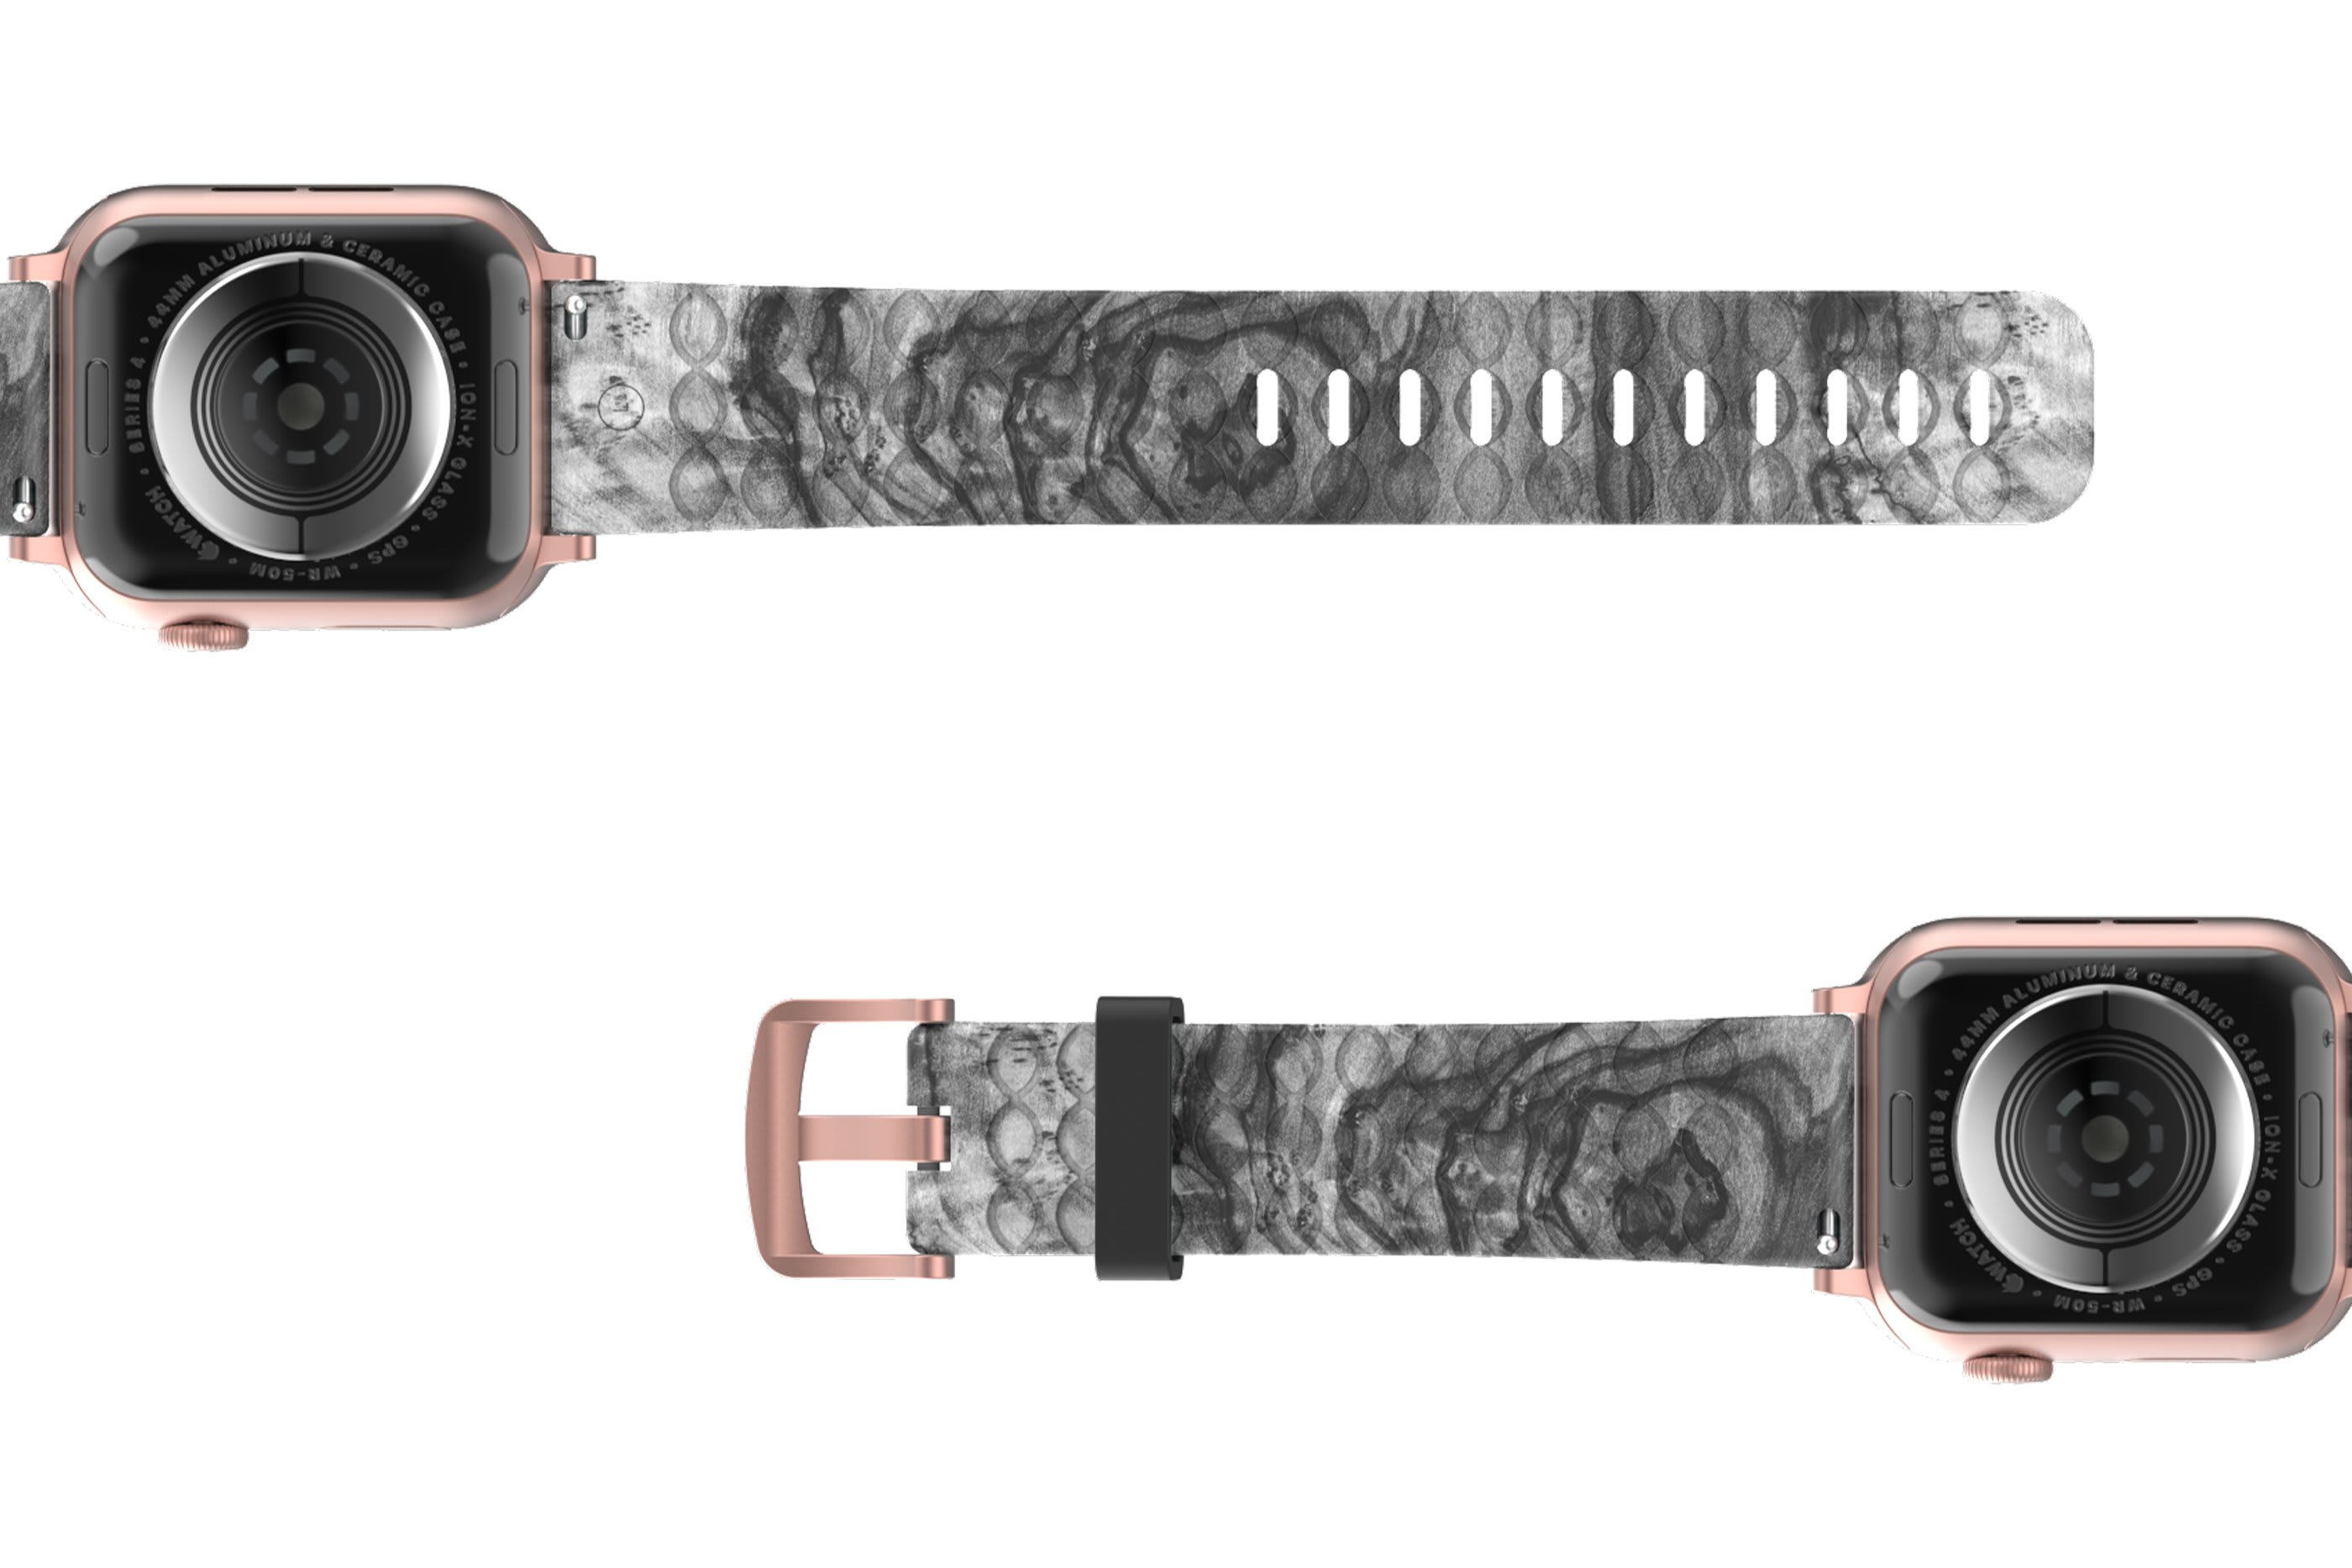 Nomad Relic Apple Watch Band with rose gold hardware viewed bottom up